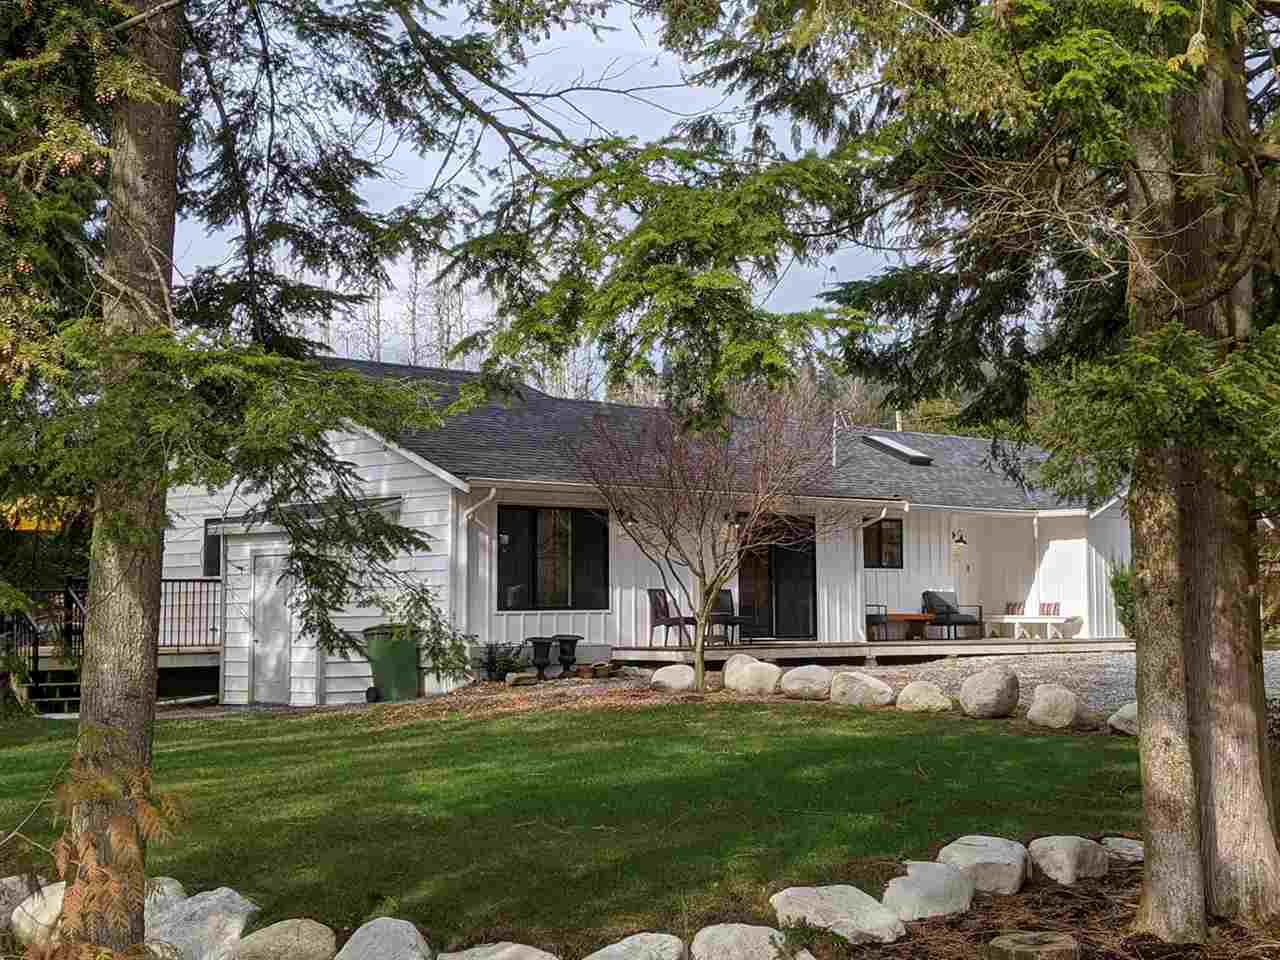 Enjoy living in this sweet country retreat on 1/3 acre, bright & spacious 3 bed, 2 bath rancher just minutes from town.Previous owners updated the interior,roof,siding & septic system in 2018, BUT the current owner took it to the NEXT LEVEL in 2019: 297' DRILLED WELL with UV filter/treatment system;tank-less HW on demand;Nat gas FP; Amana 40,000 BTU furnace & 20KW generator w/auto transfer switch for winter storms;double french doors onto the HUGE partially covered wrap-around deck for entertaining;2 Nat gas BBQ hookups;veranda at the front & covered priv.deck off the m/suite.Lots of room for gardening and a view of a tree farm w/grazing deer from your deck - Showings will only be on Saturdays, by appointment only, due to Seller's work schedule.